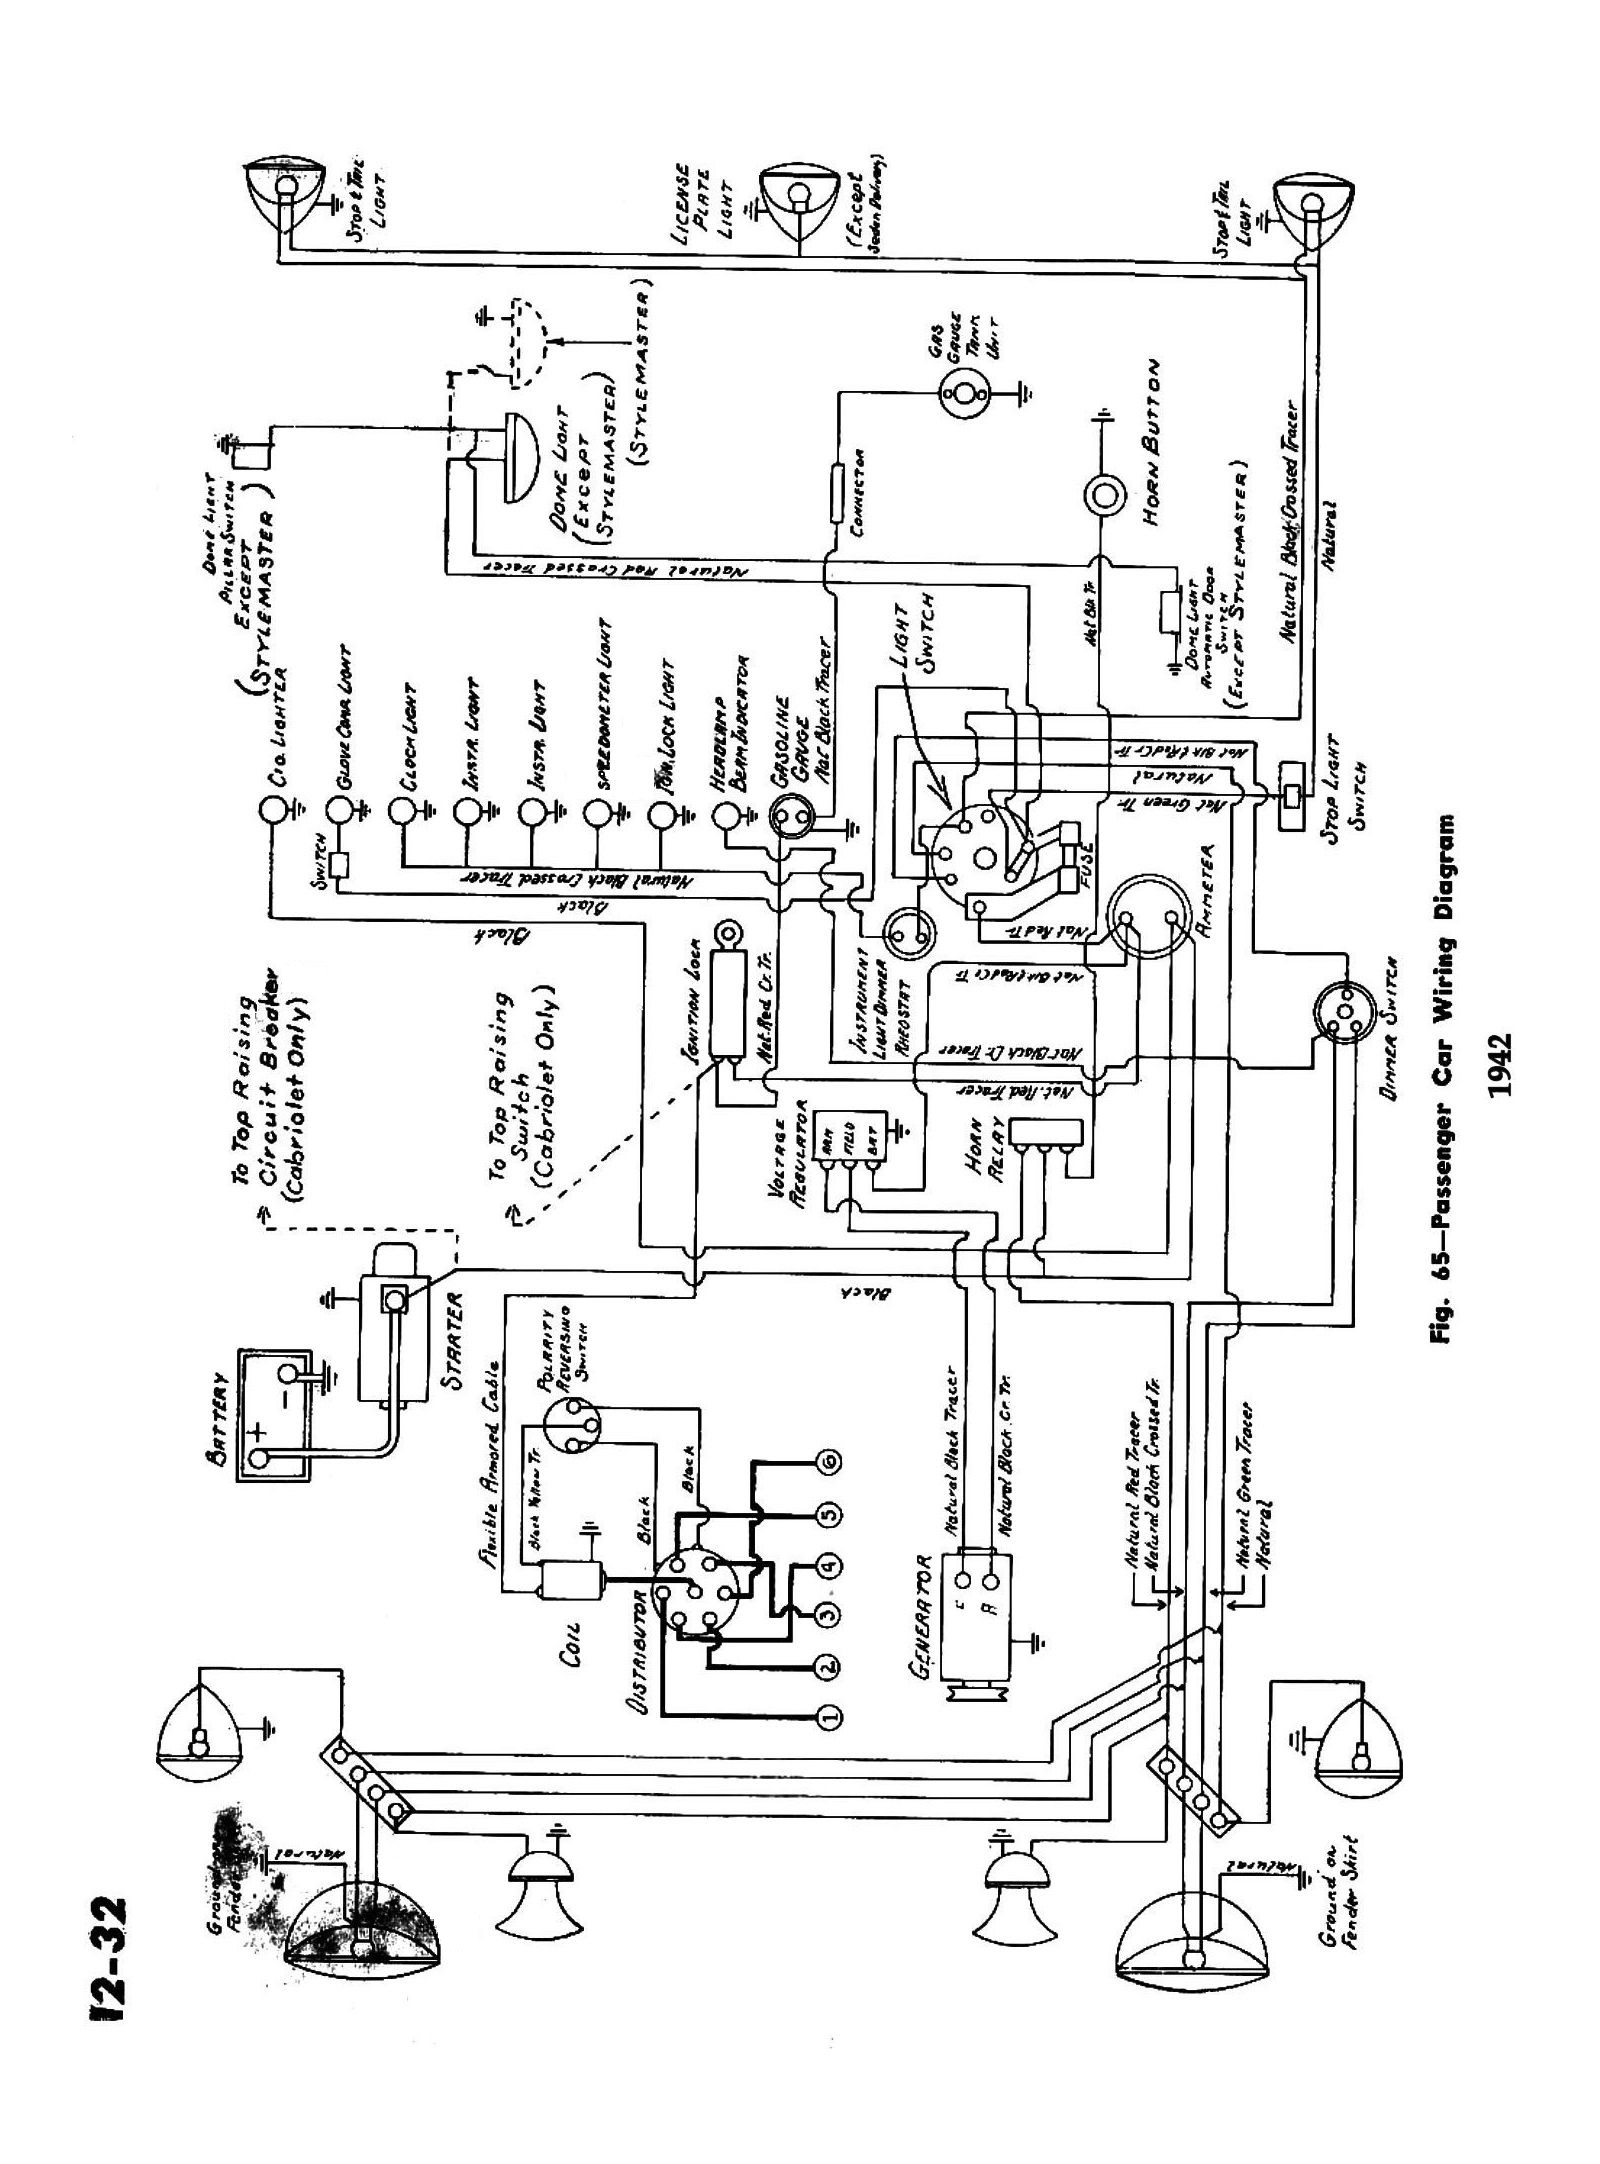 hight resolution of wrg 3714 pick up trailer wiring gmelectrical wiring diagram for the 1948 49 chevrolet trucks